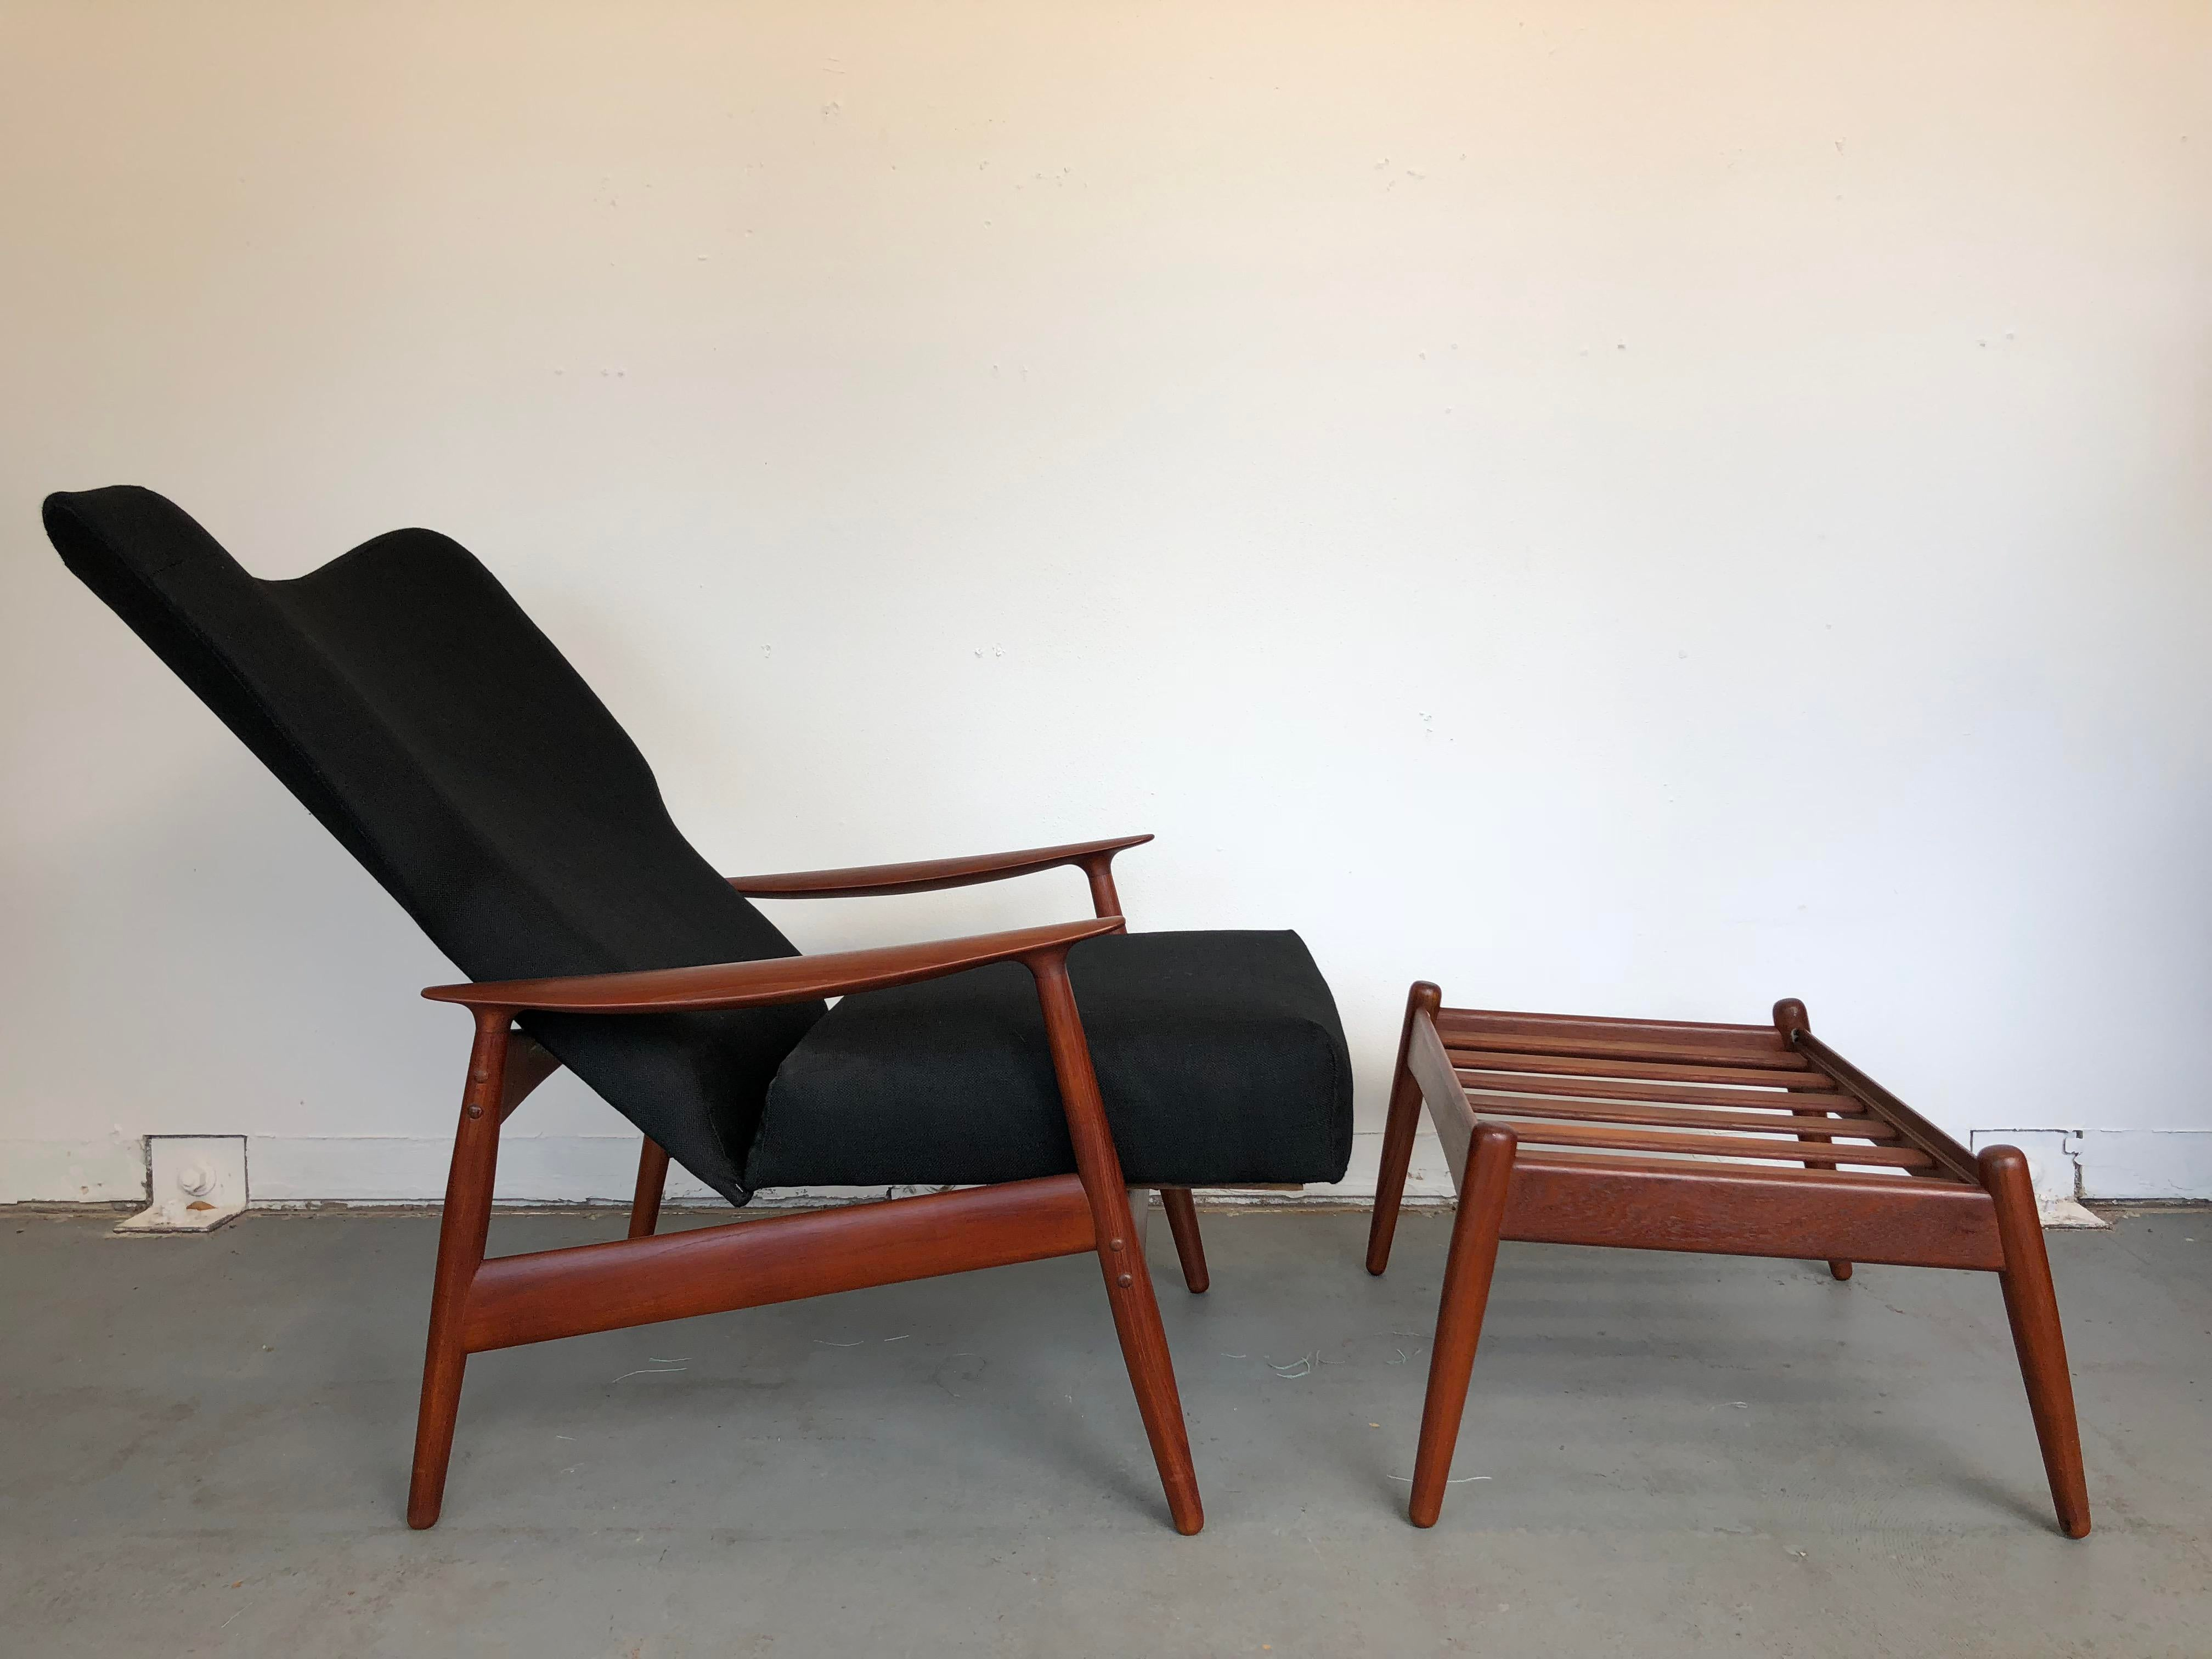 1960s Danish Modern Reclining Lounge Chair And Ottoman 2 Pieces